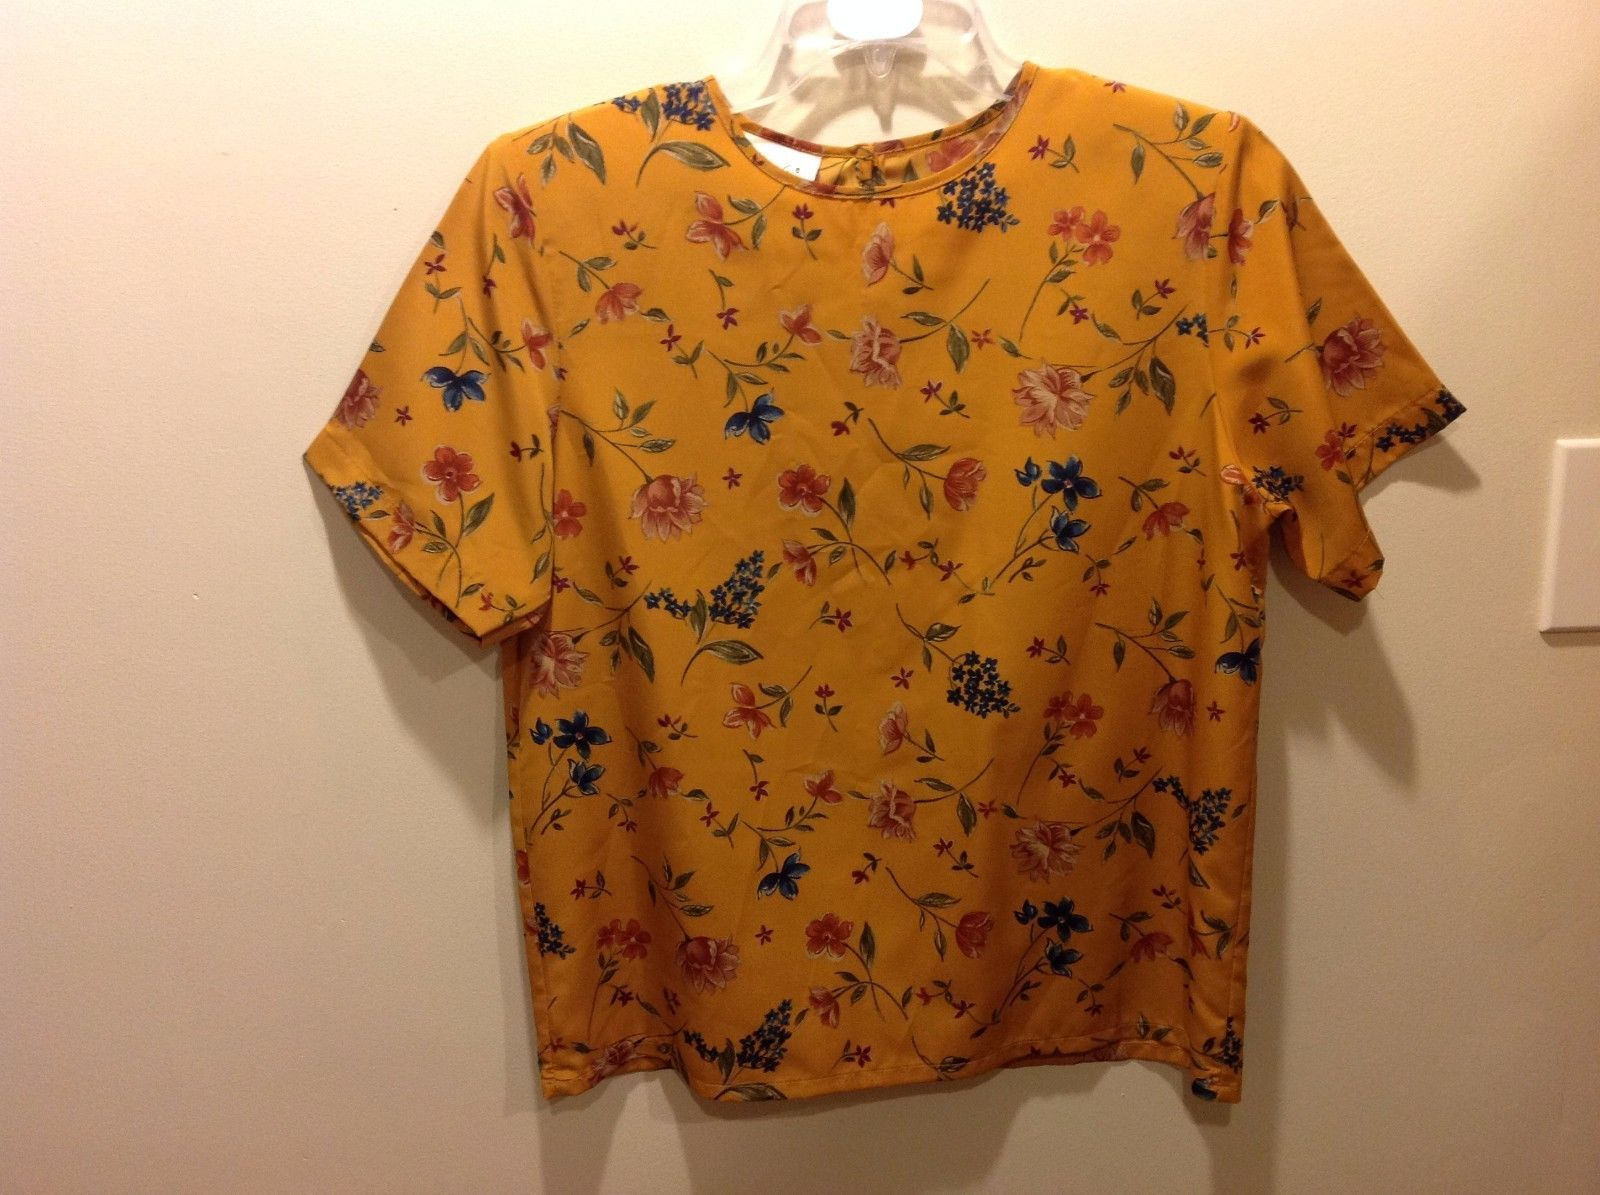 Floral Mustard Yellow Short Sleeve Blouse Sz 12